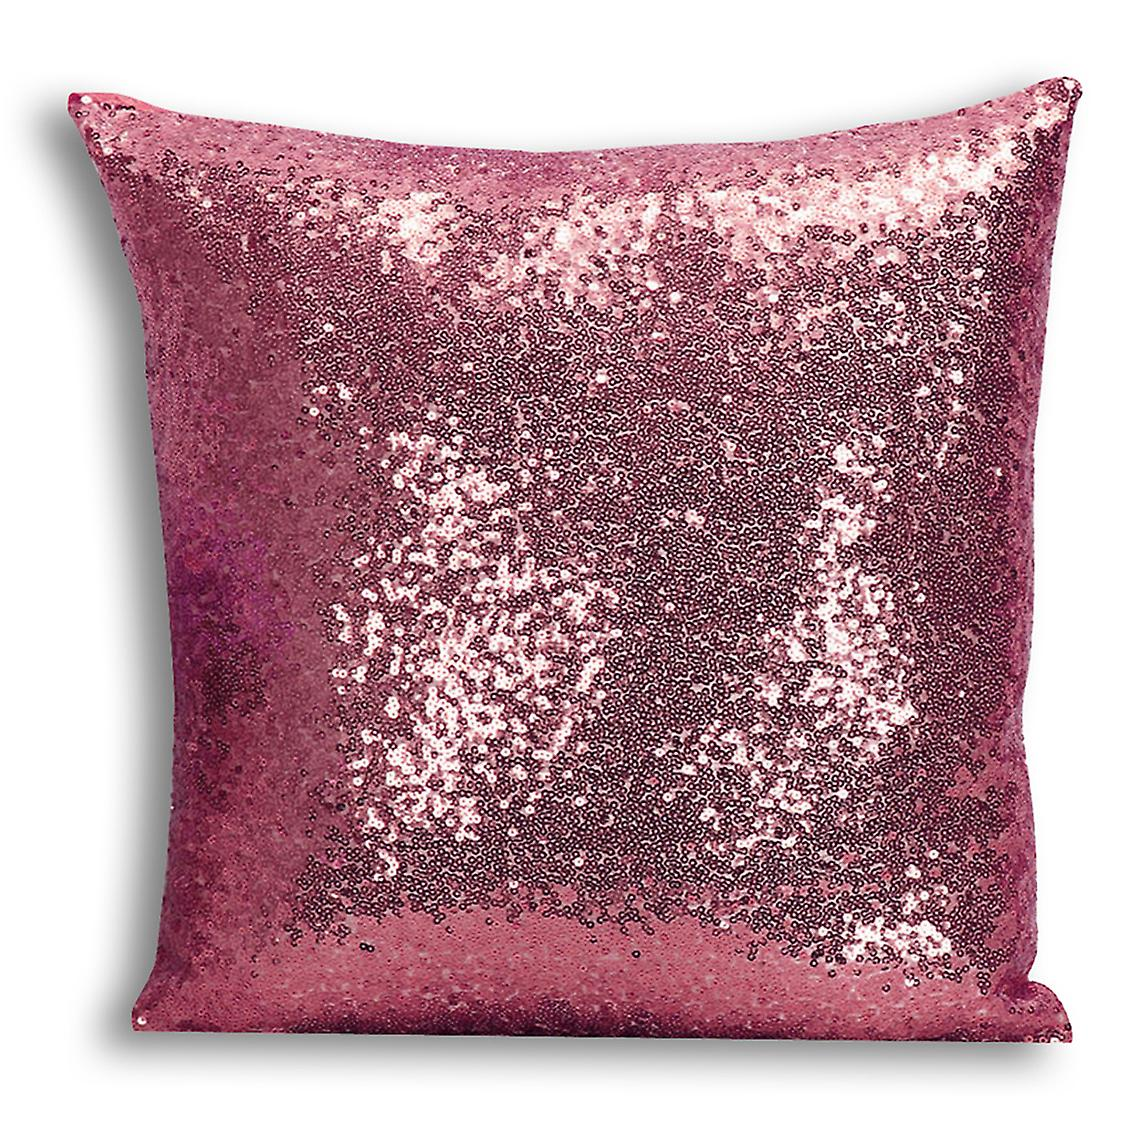 Gold Cover tronixsUnicorn Home Decor I CushionPillow 16 Inserted Design Printed For Rose Sequin With DIH29WE